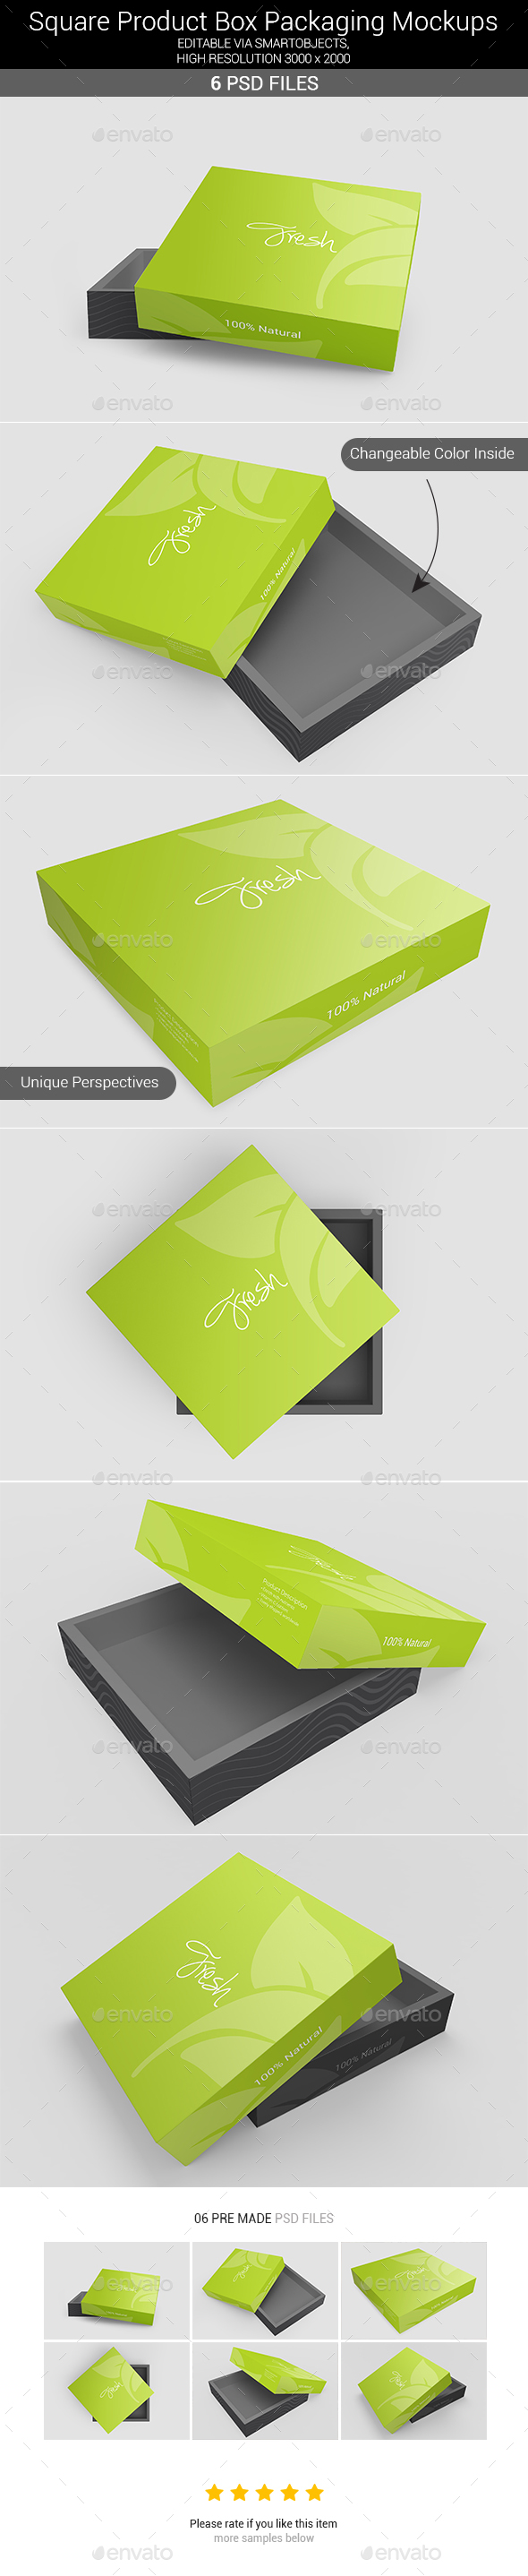 Square Box Packaging Mockups